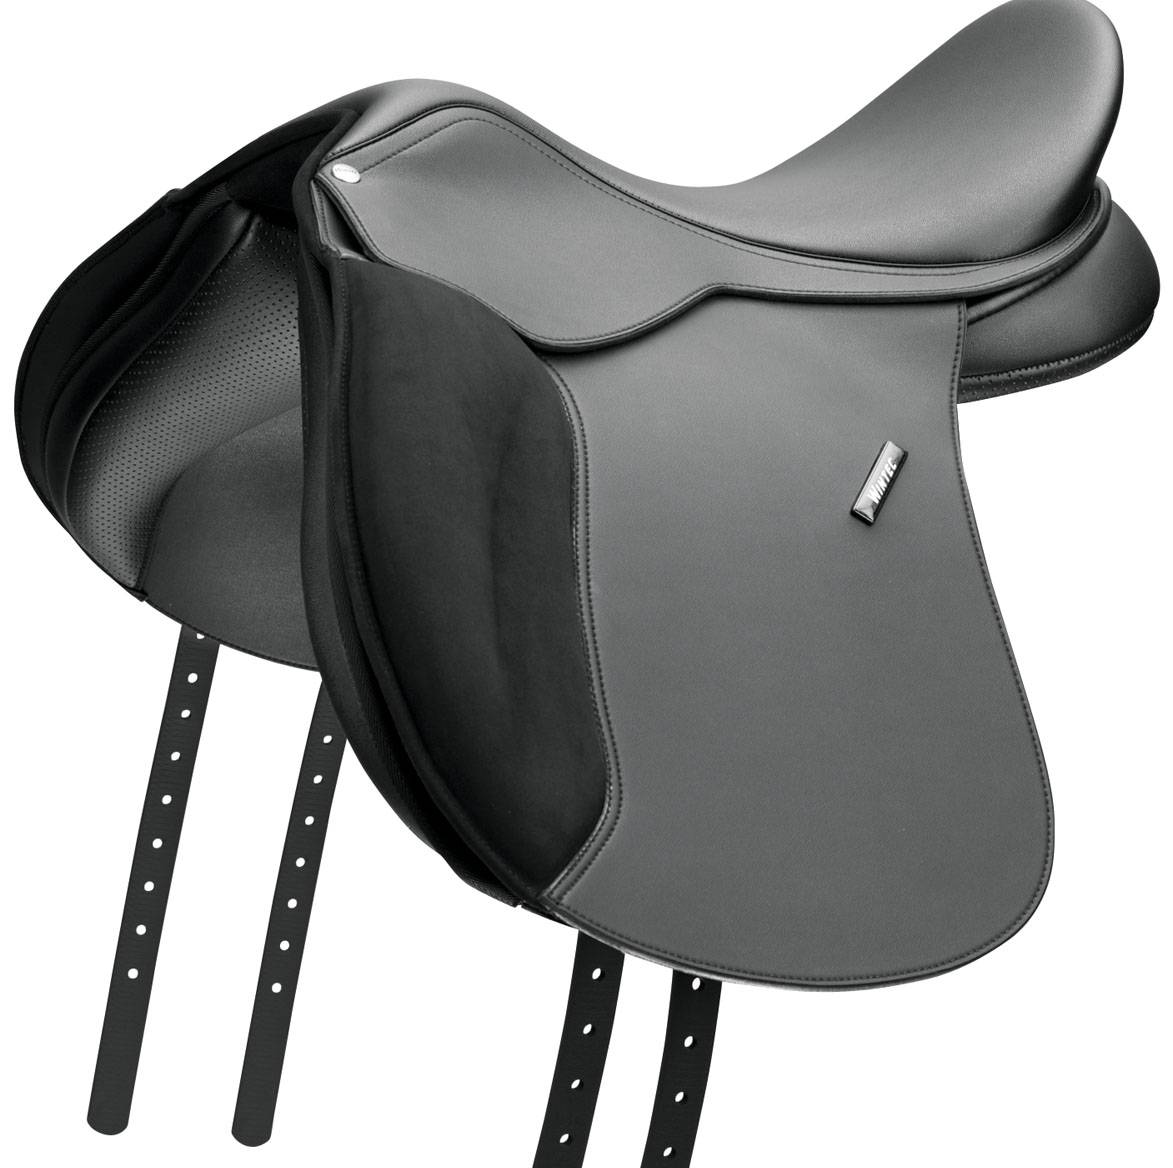 Wintec 500 Wide CAIR All-Purpose Saddle